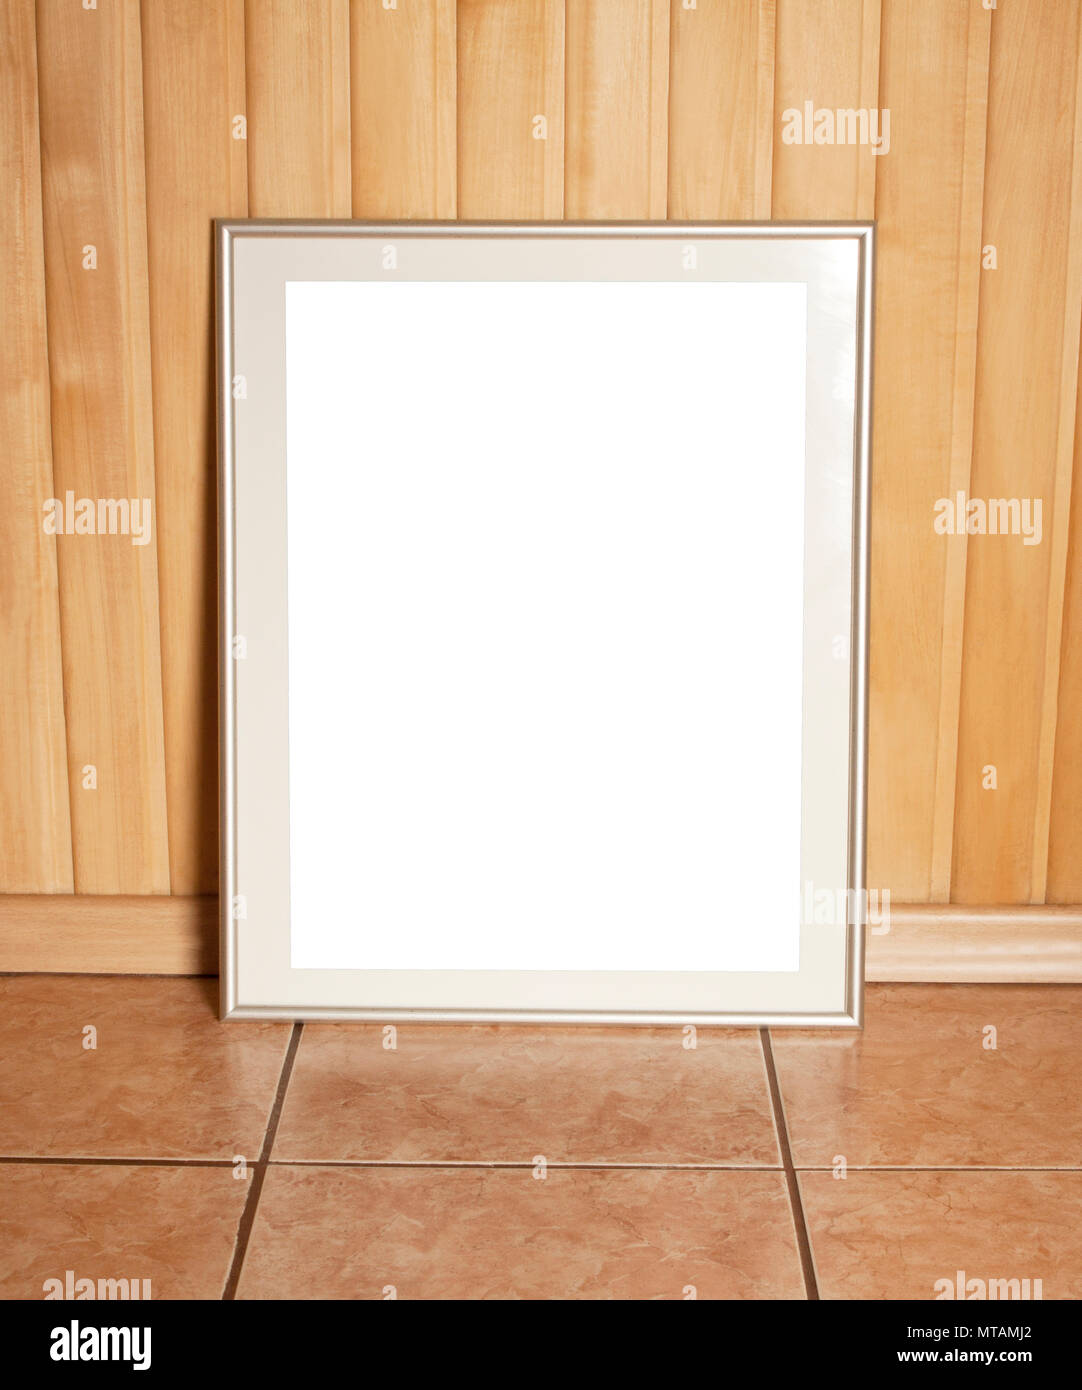 blank blackboard frame on wooden wall template mock up for adding